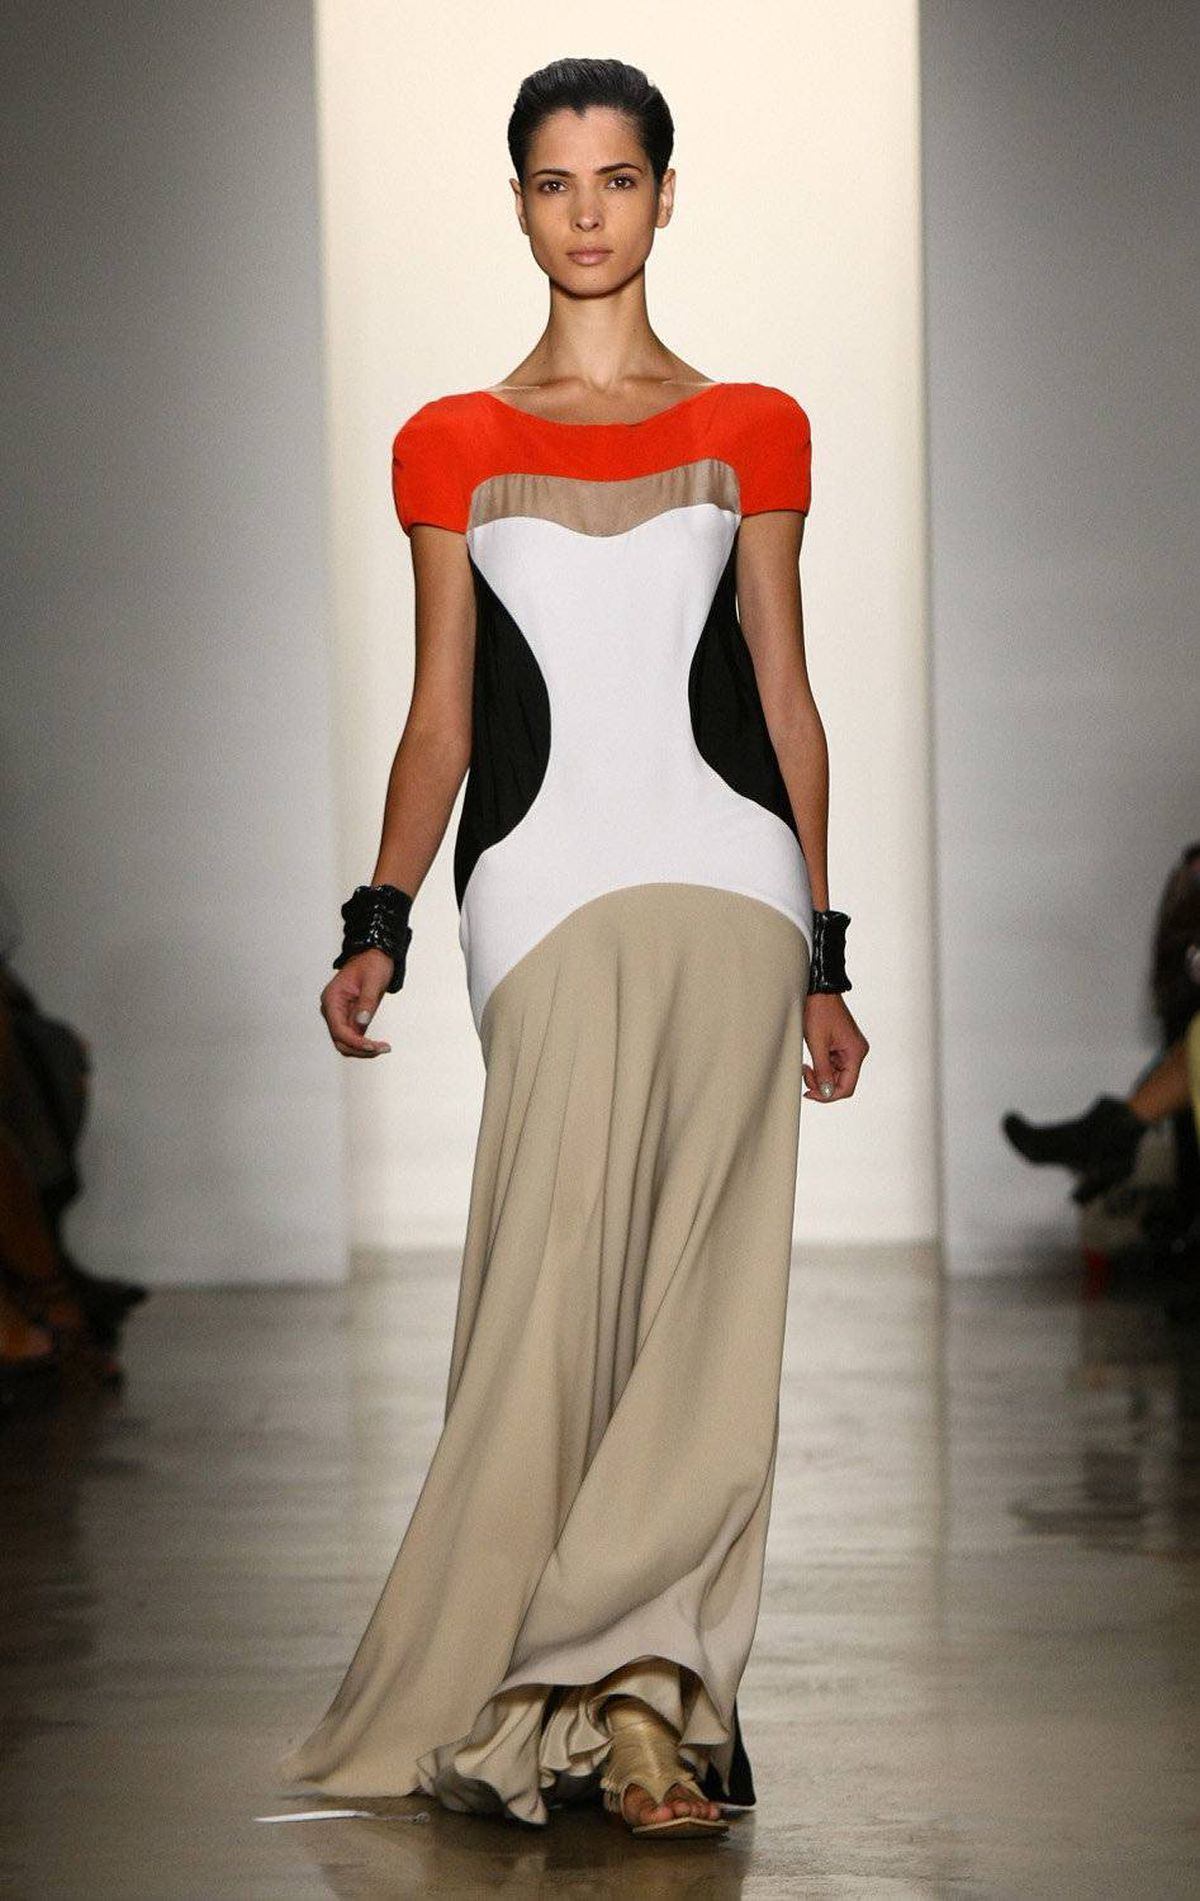 A model walks the runway at the Ohne Titel Spring 2012 fashion show during Mercedes-Benz Fashion Week at Milk Studios on September 12, 2011 in New York.